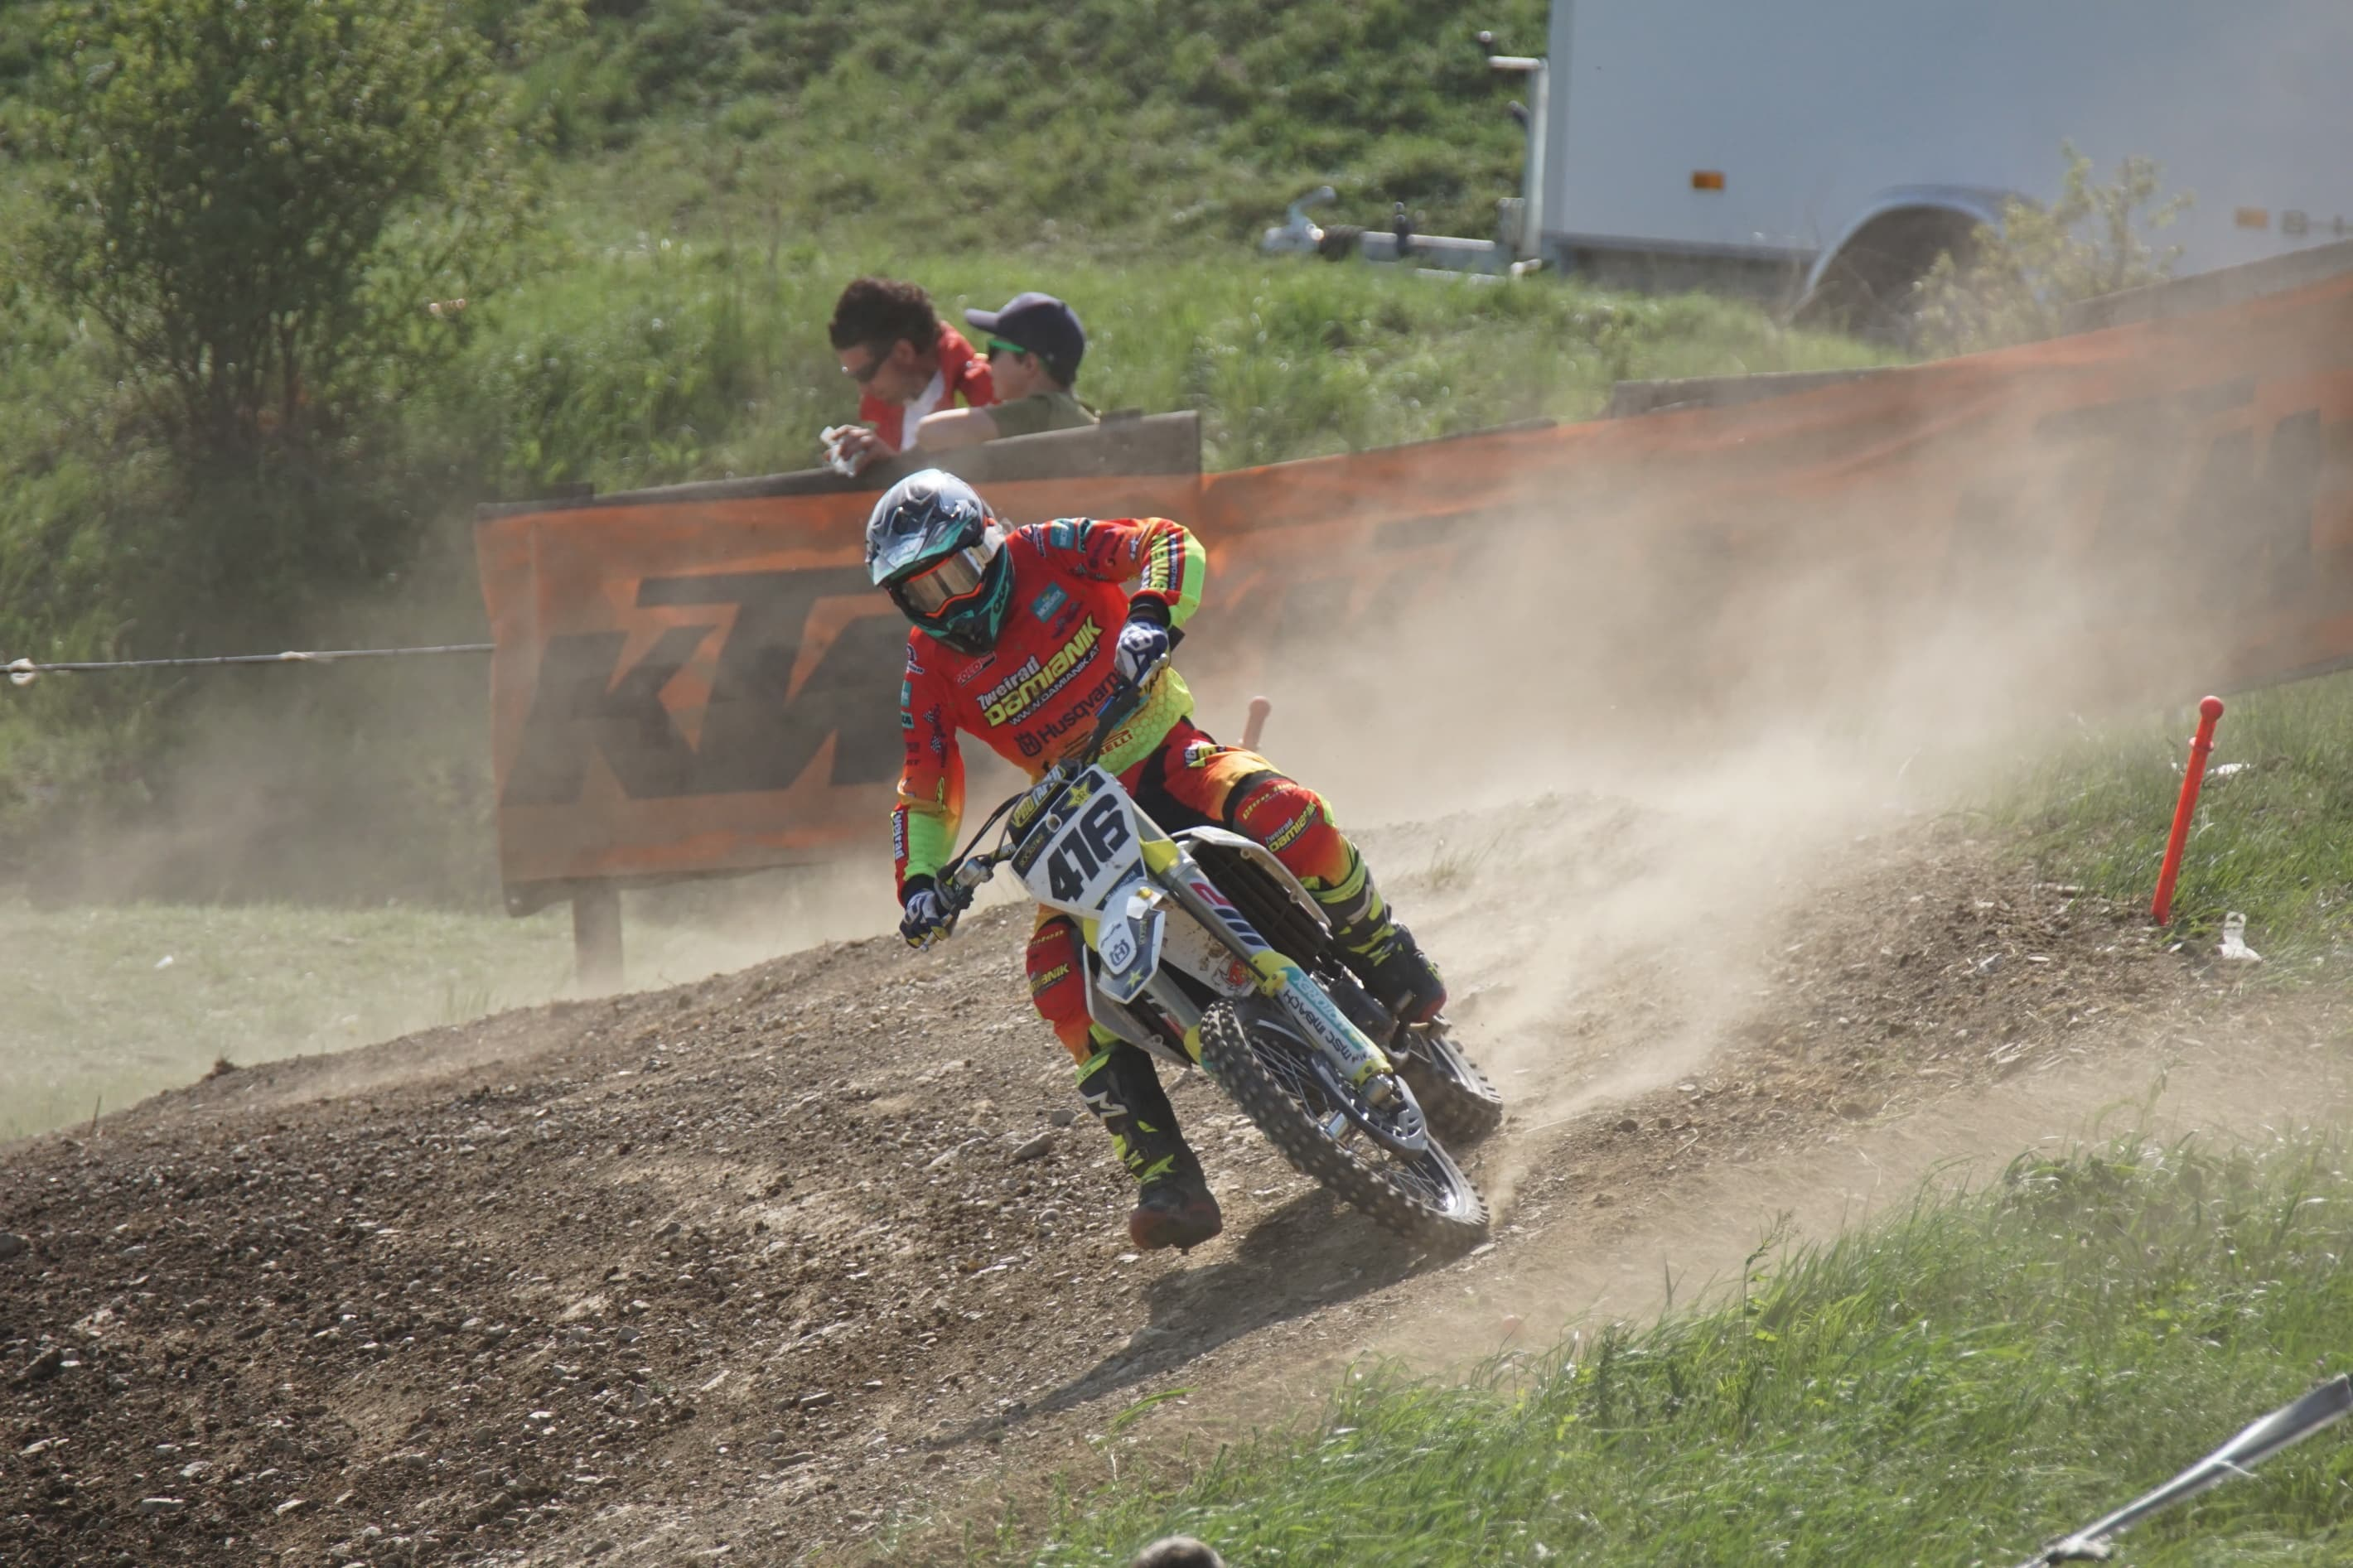 DSC 805_Moto Cross Sittendorf Teil1 am 29.04.2018